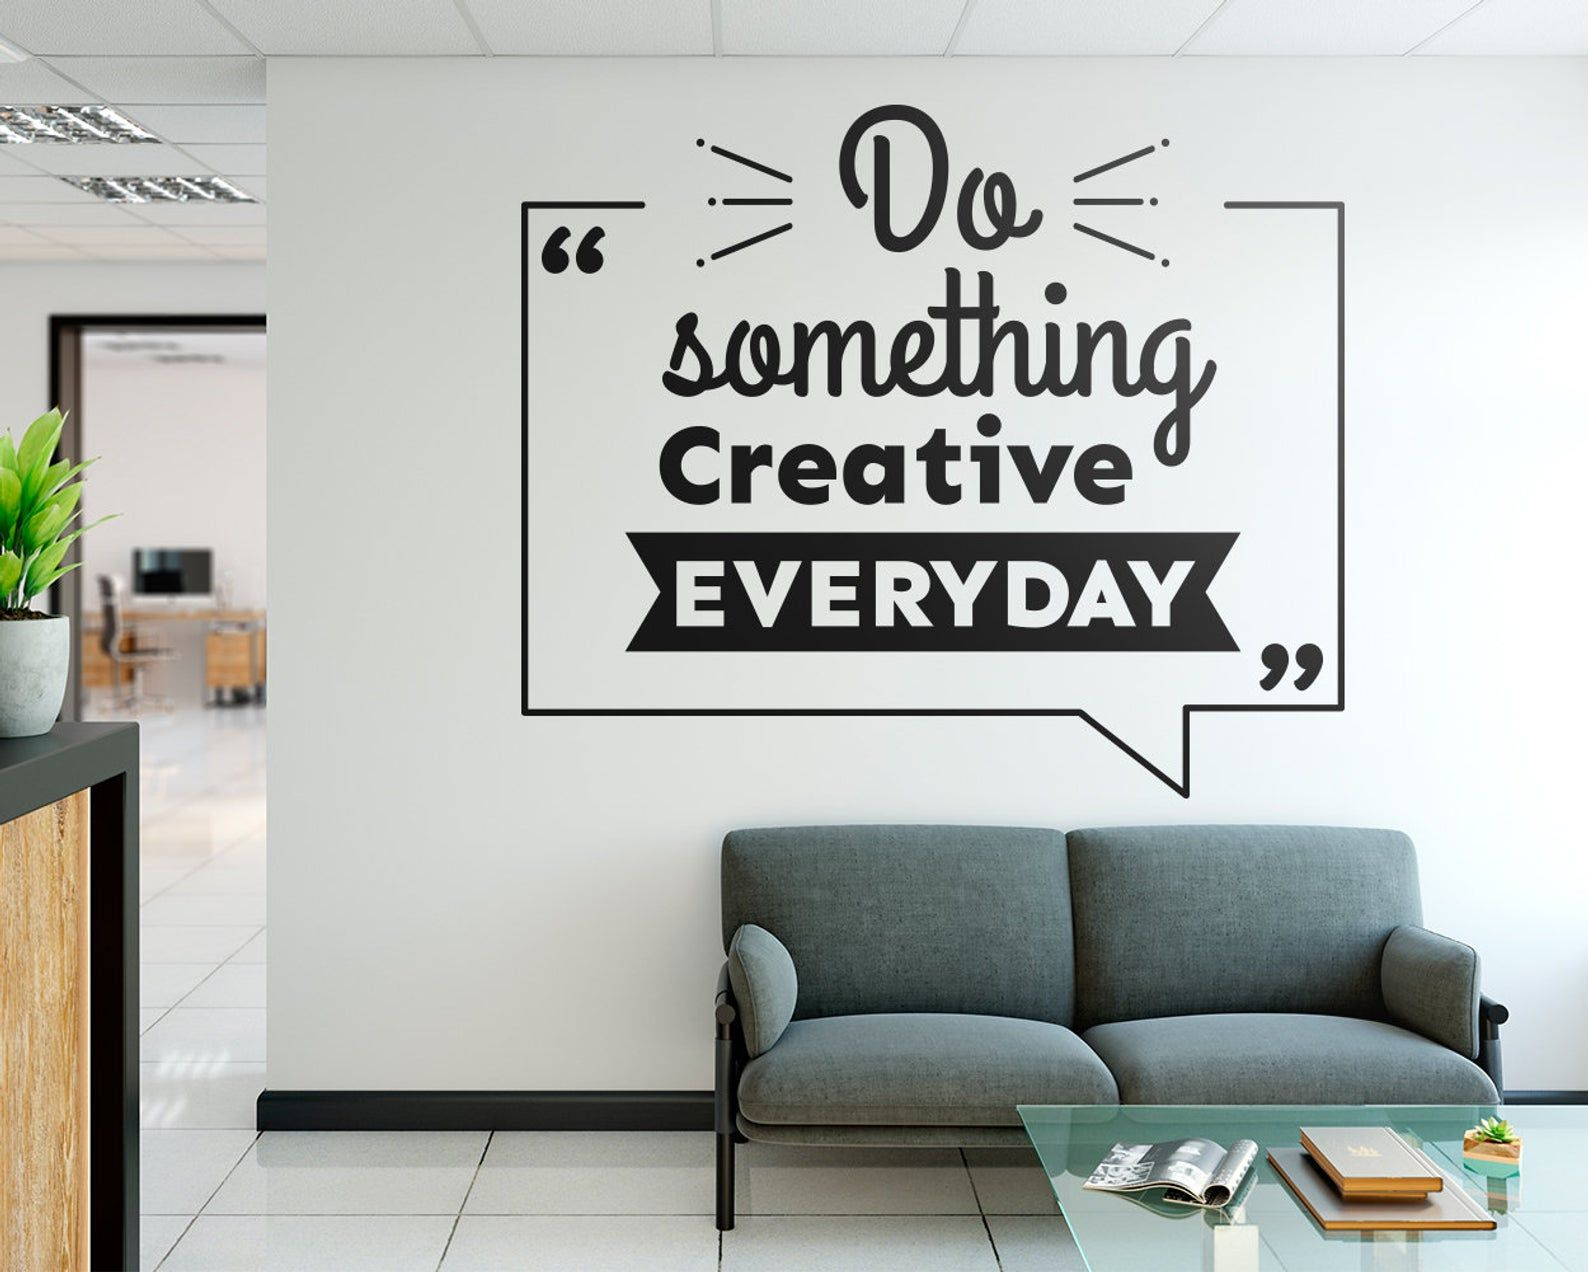 Office Decor Office Create Motivational Inspiring Office Etsy Office Wall Design Office Wall Decals Office Wall Art